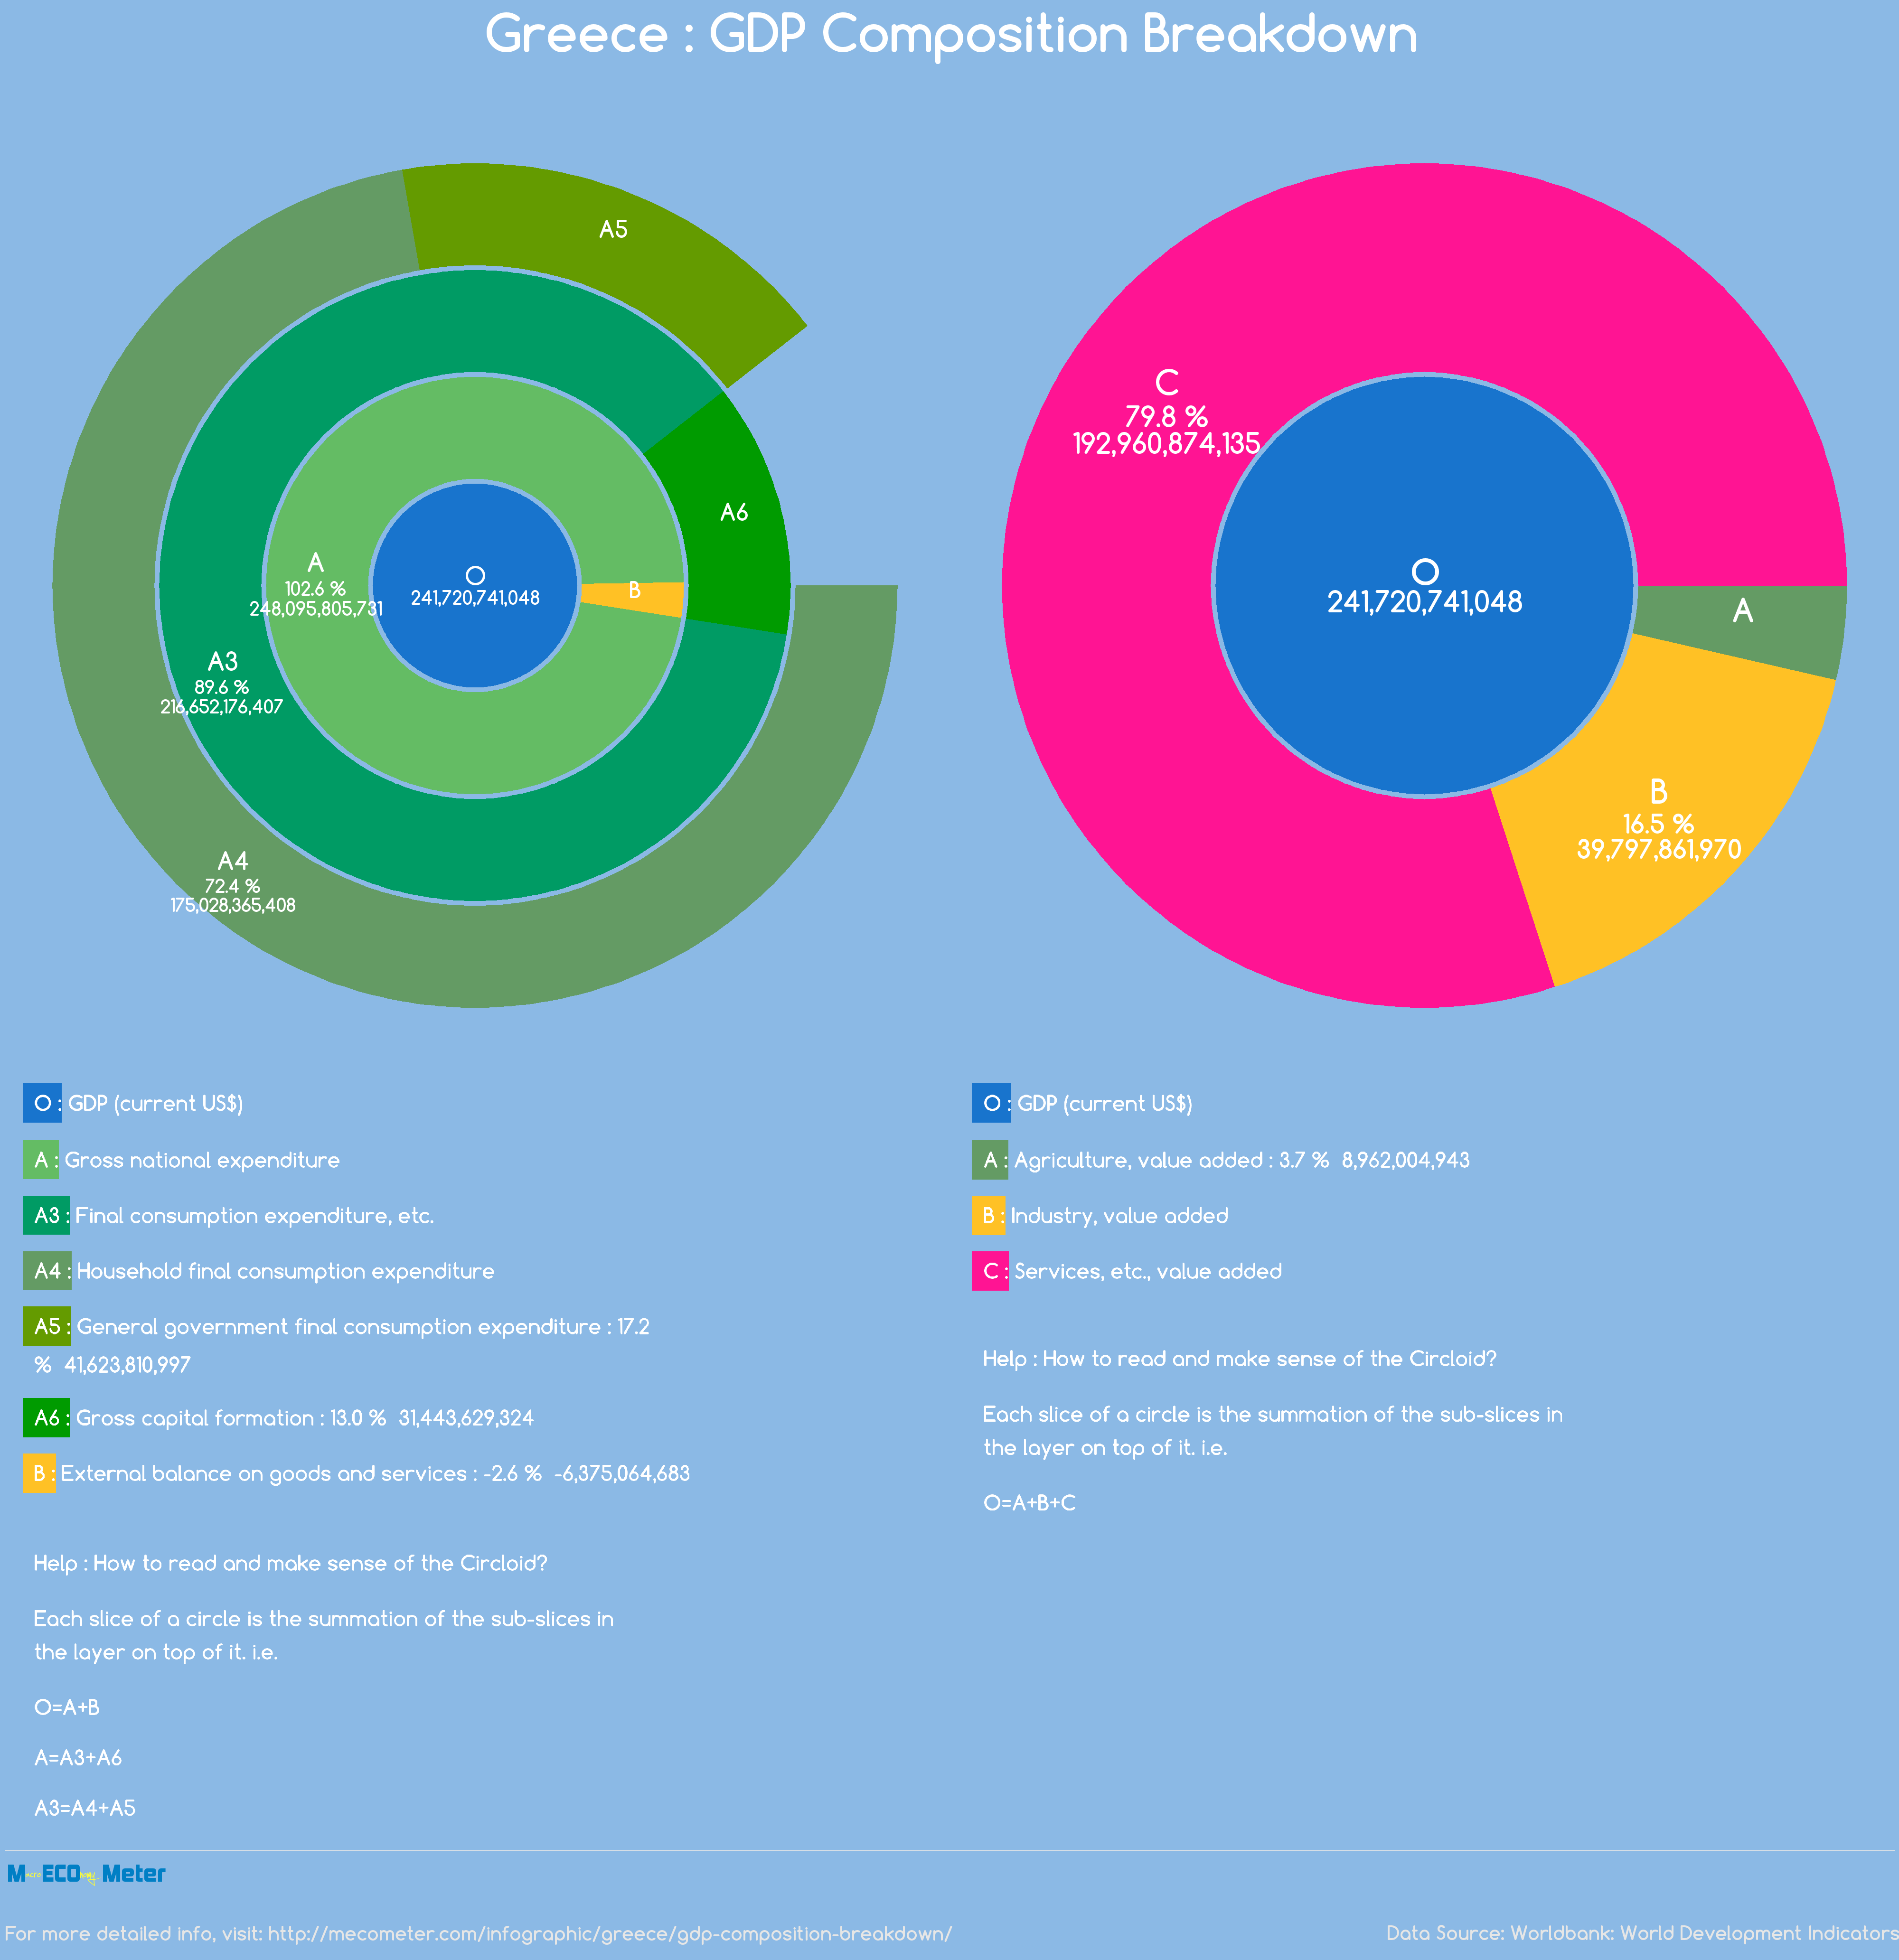 Greece : GDP Composition Breakdown